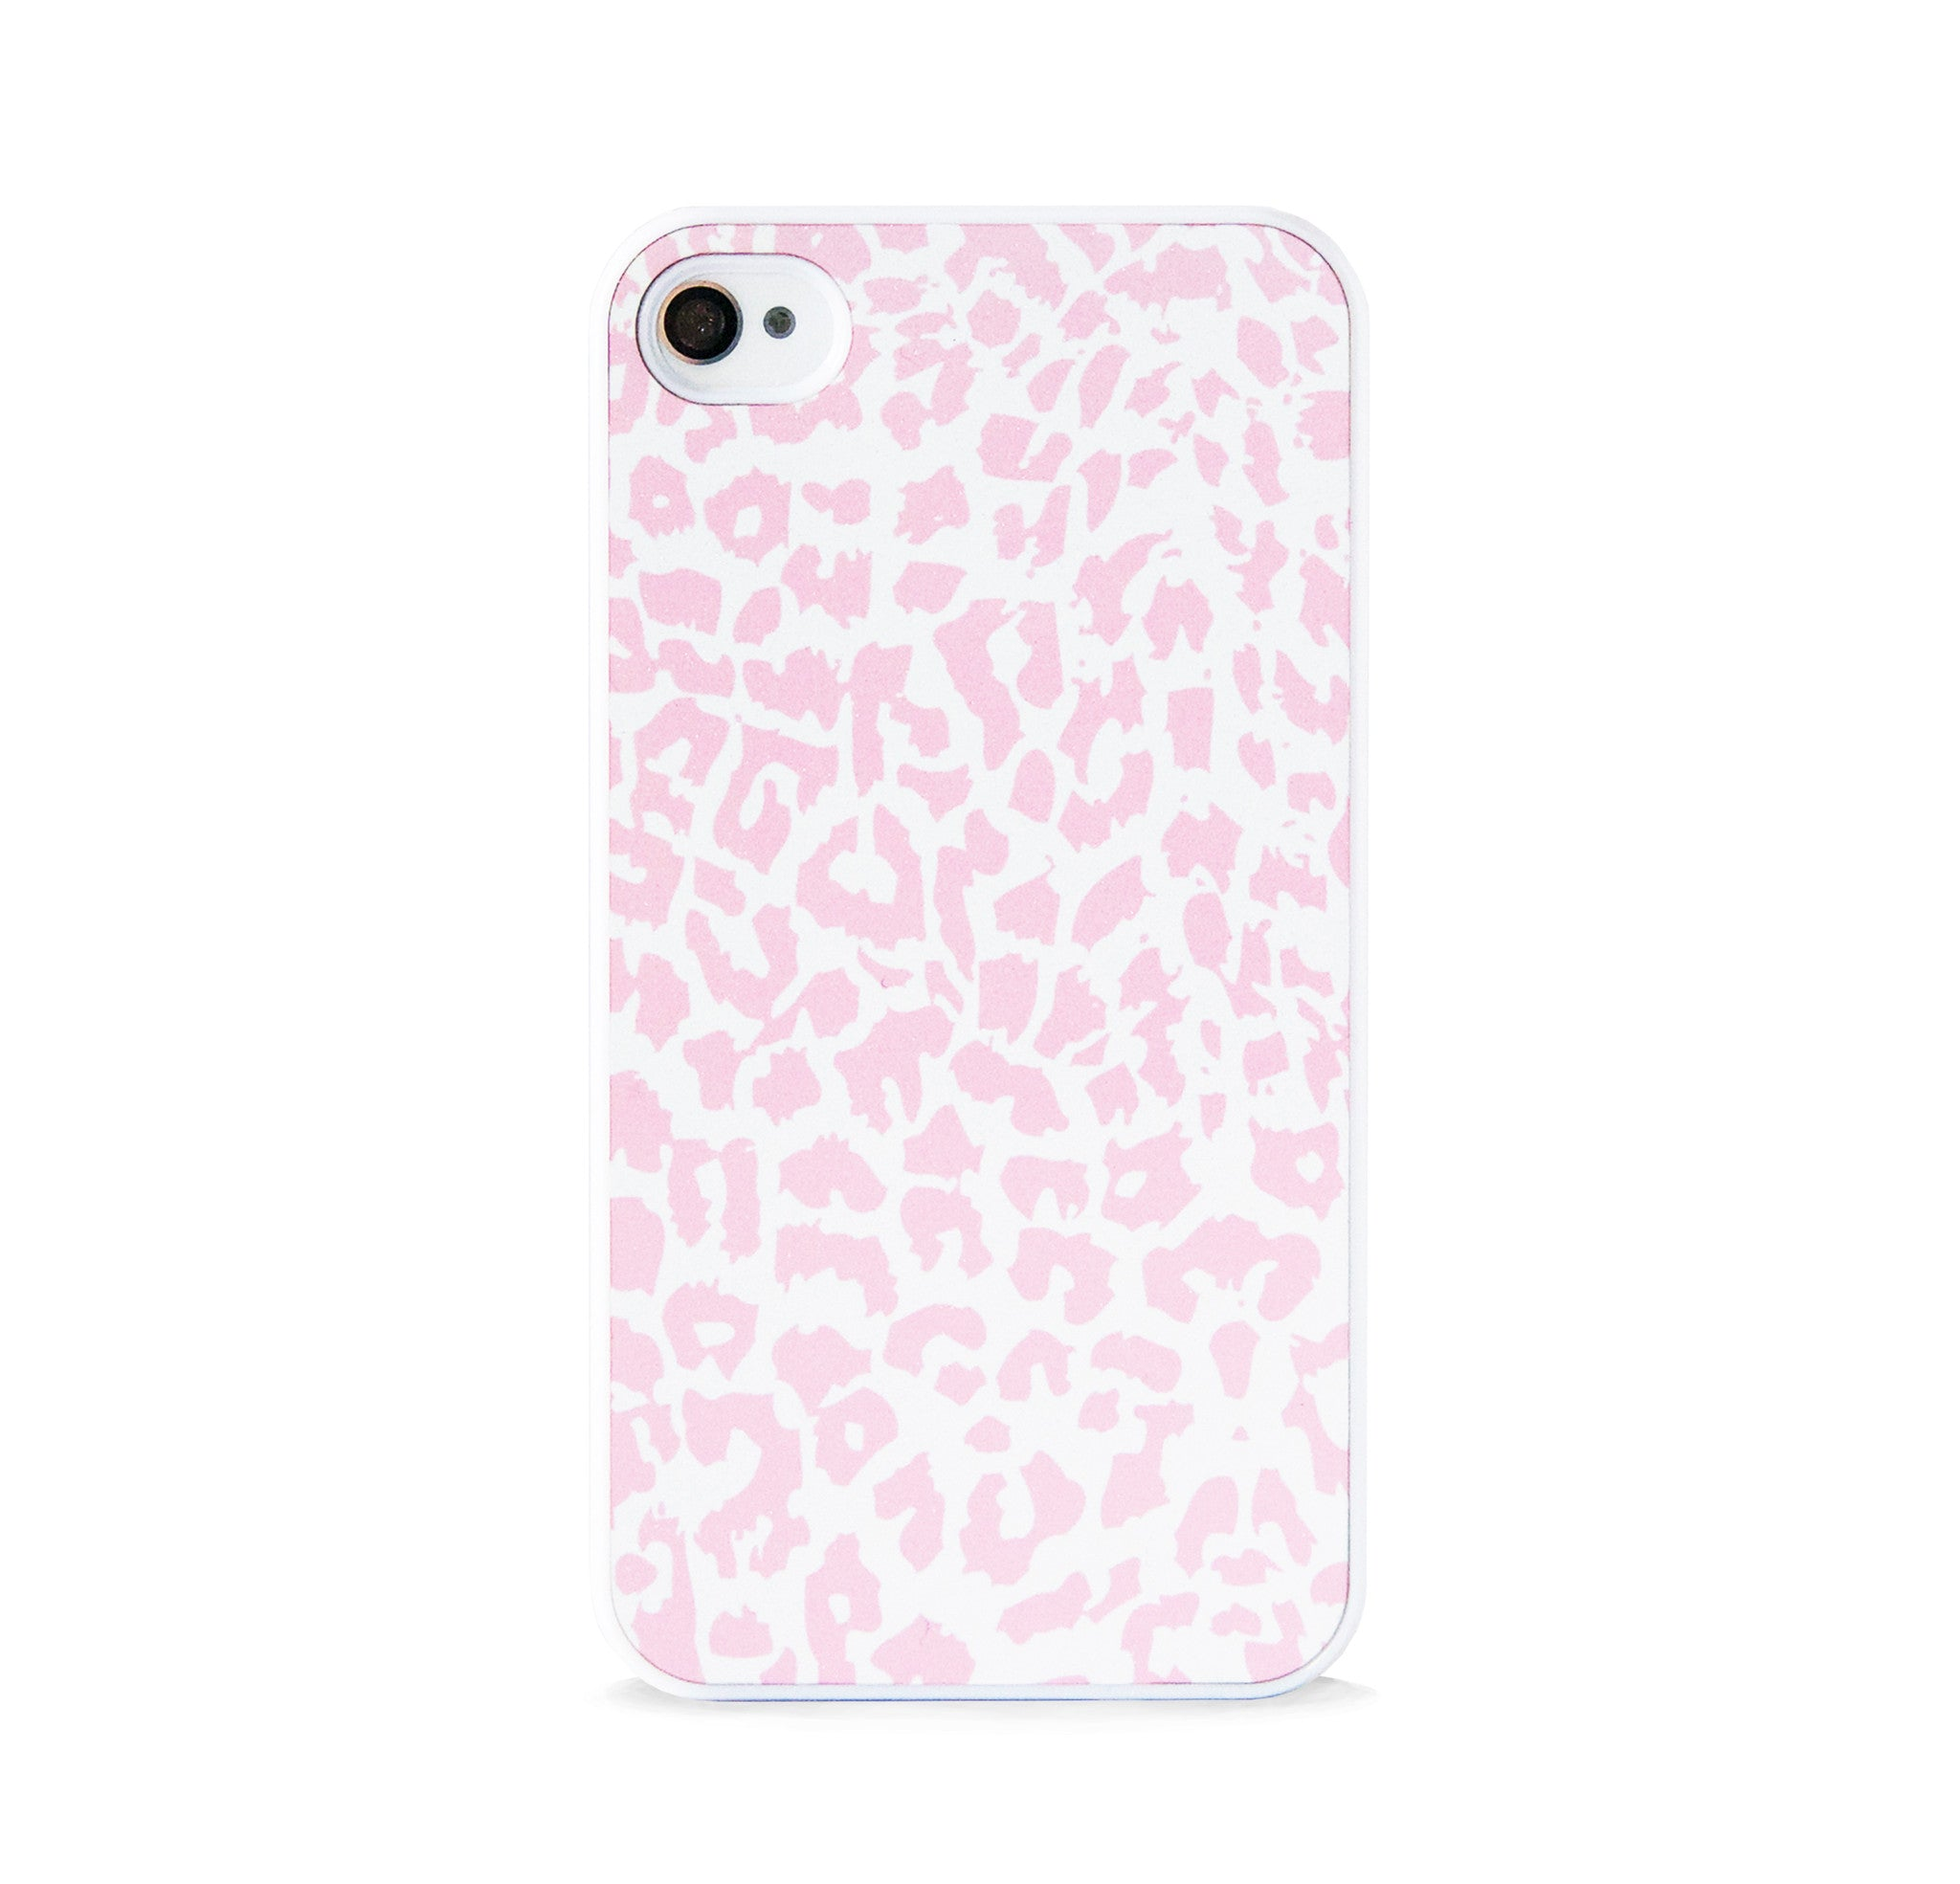 LEOPARD PNK FOR IPHONE 4/4S